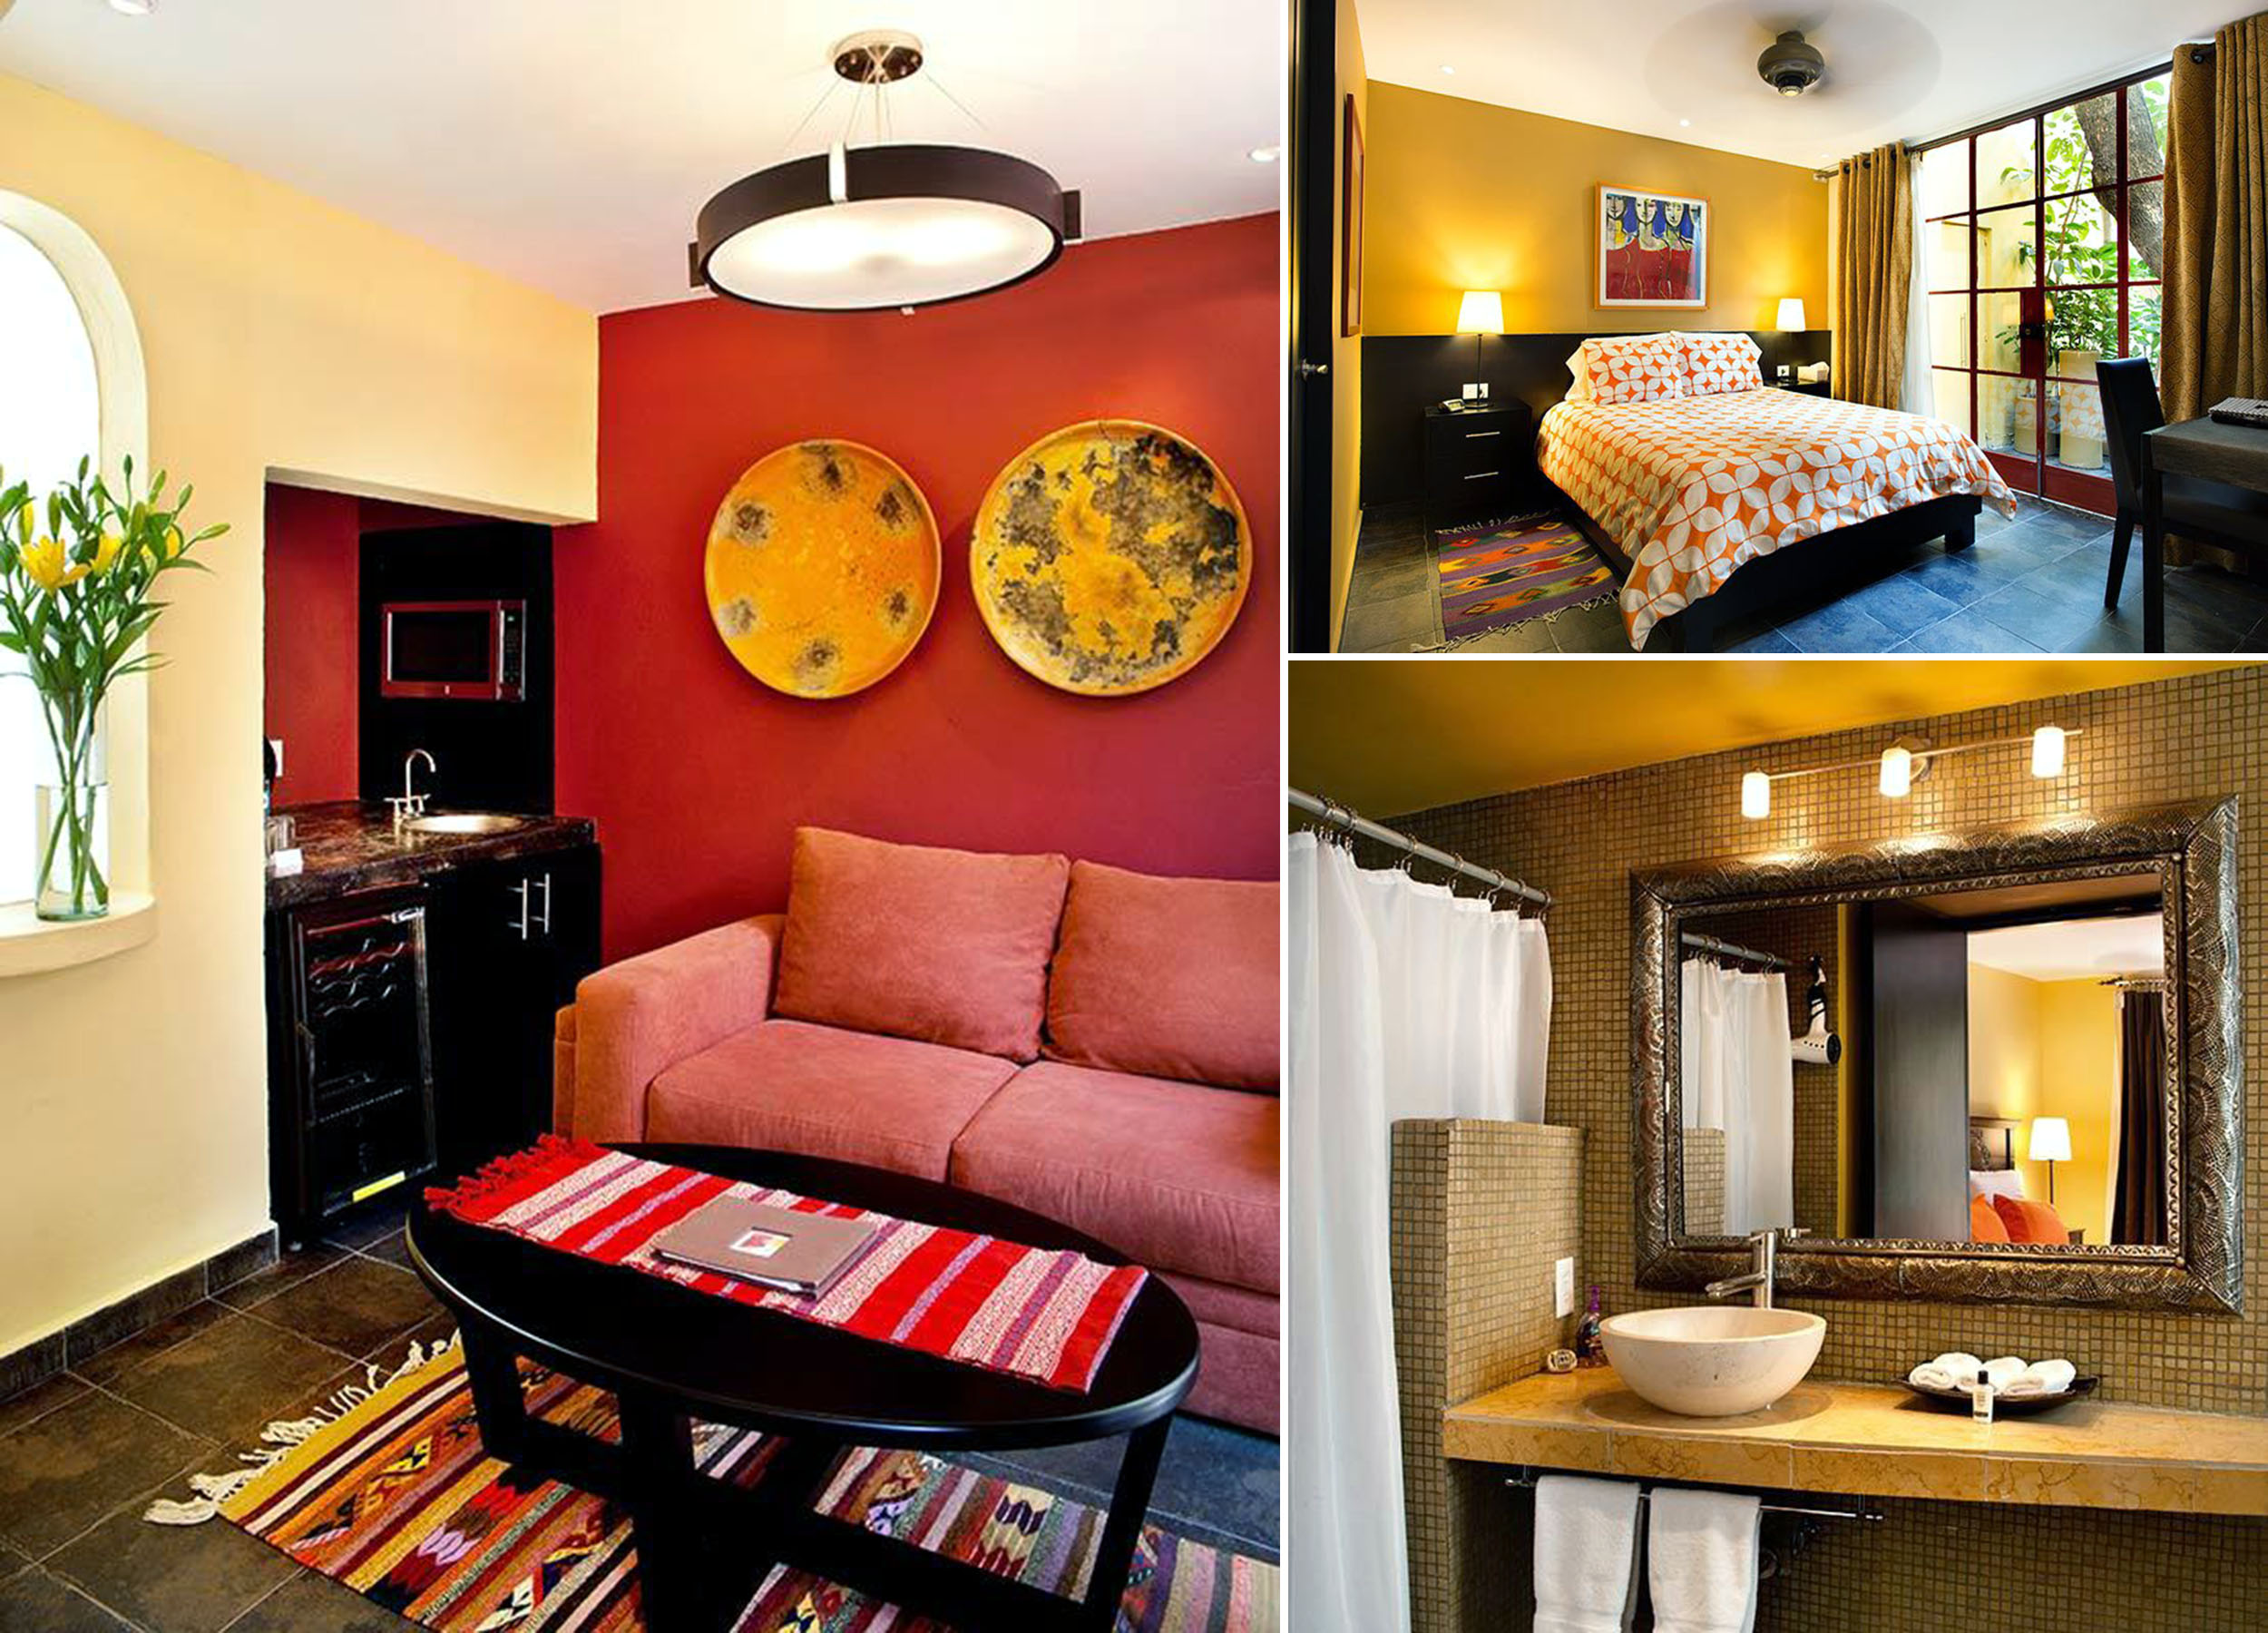 Feeling right at home: theJunior Suite at Condesa's Red Tree House.